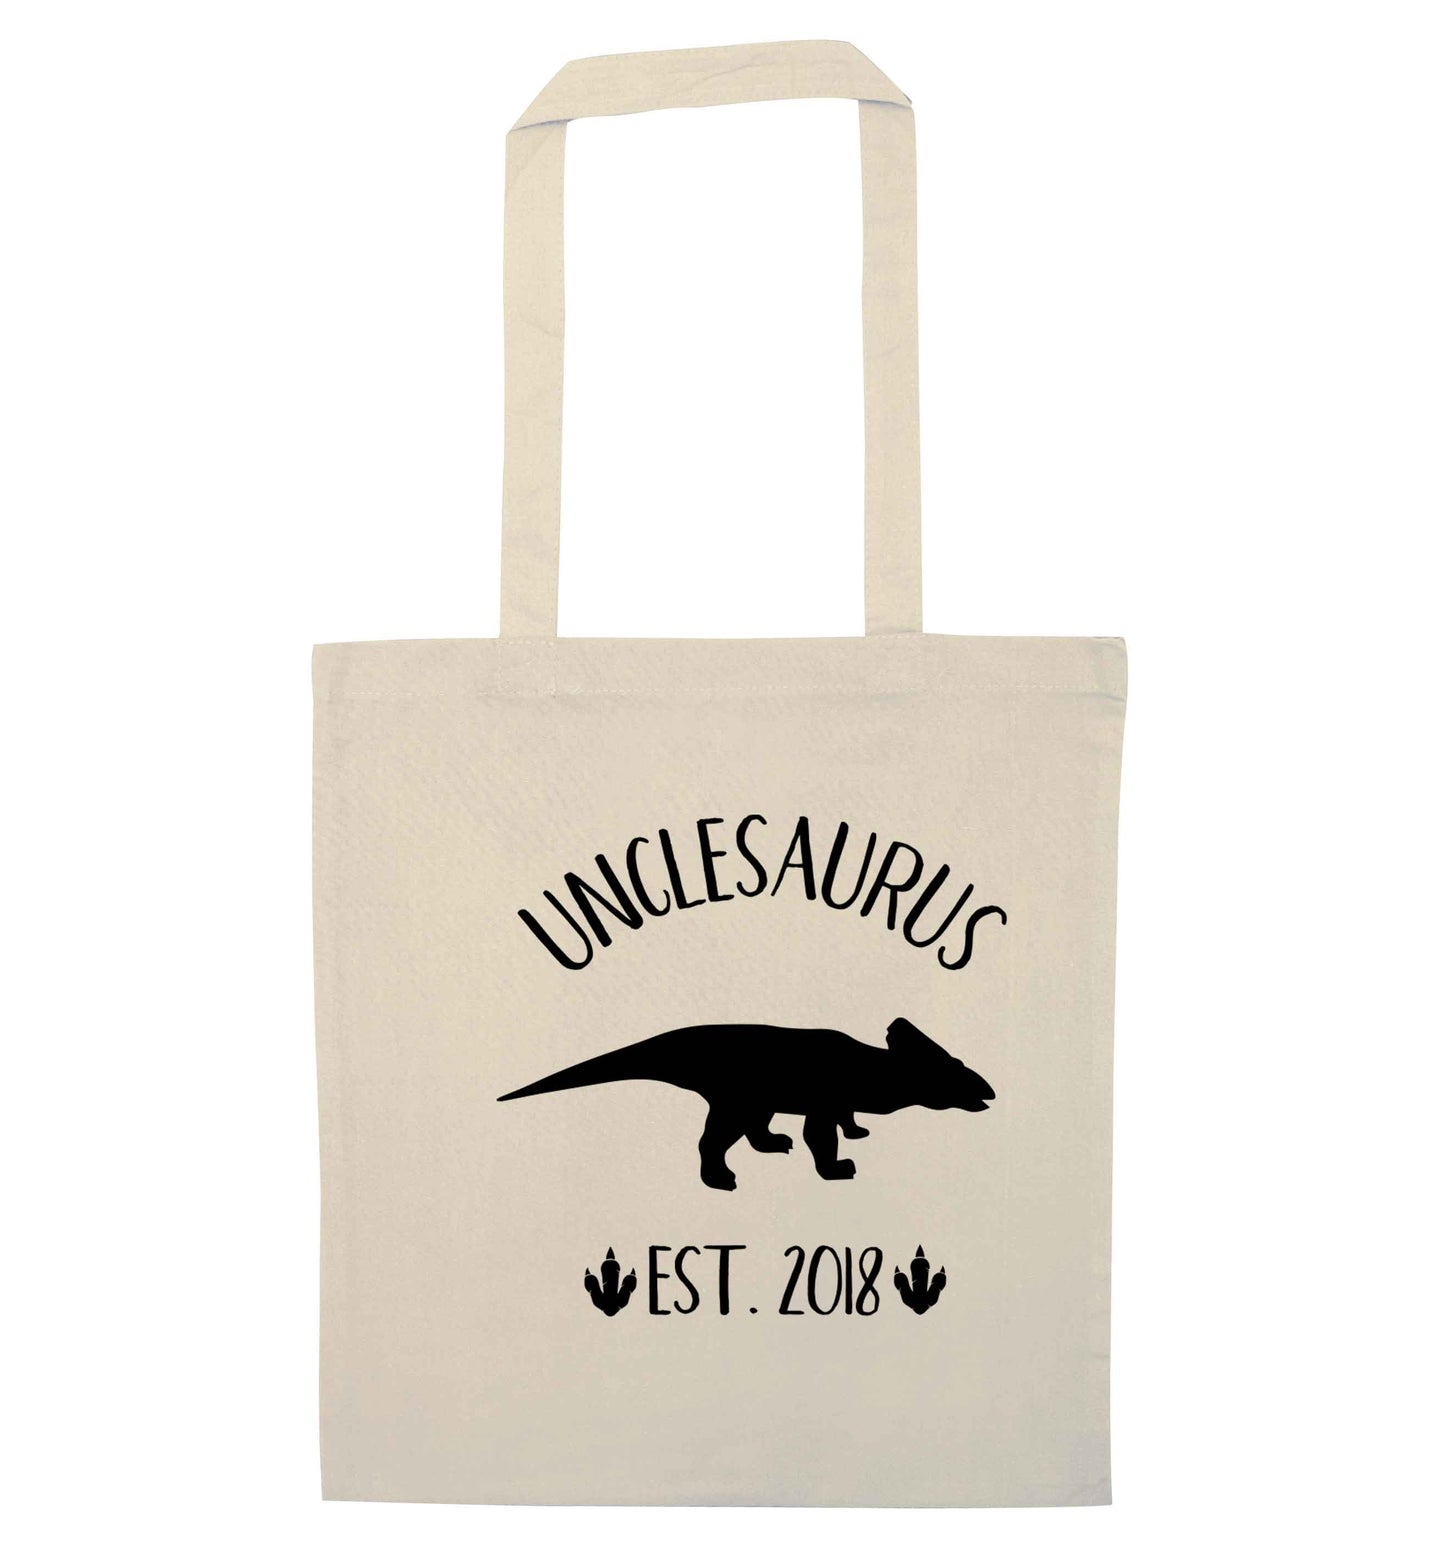 Personalised unclesaurus since (custom date) natural tote bag